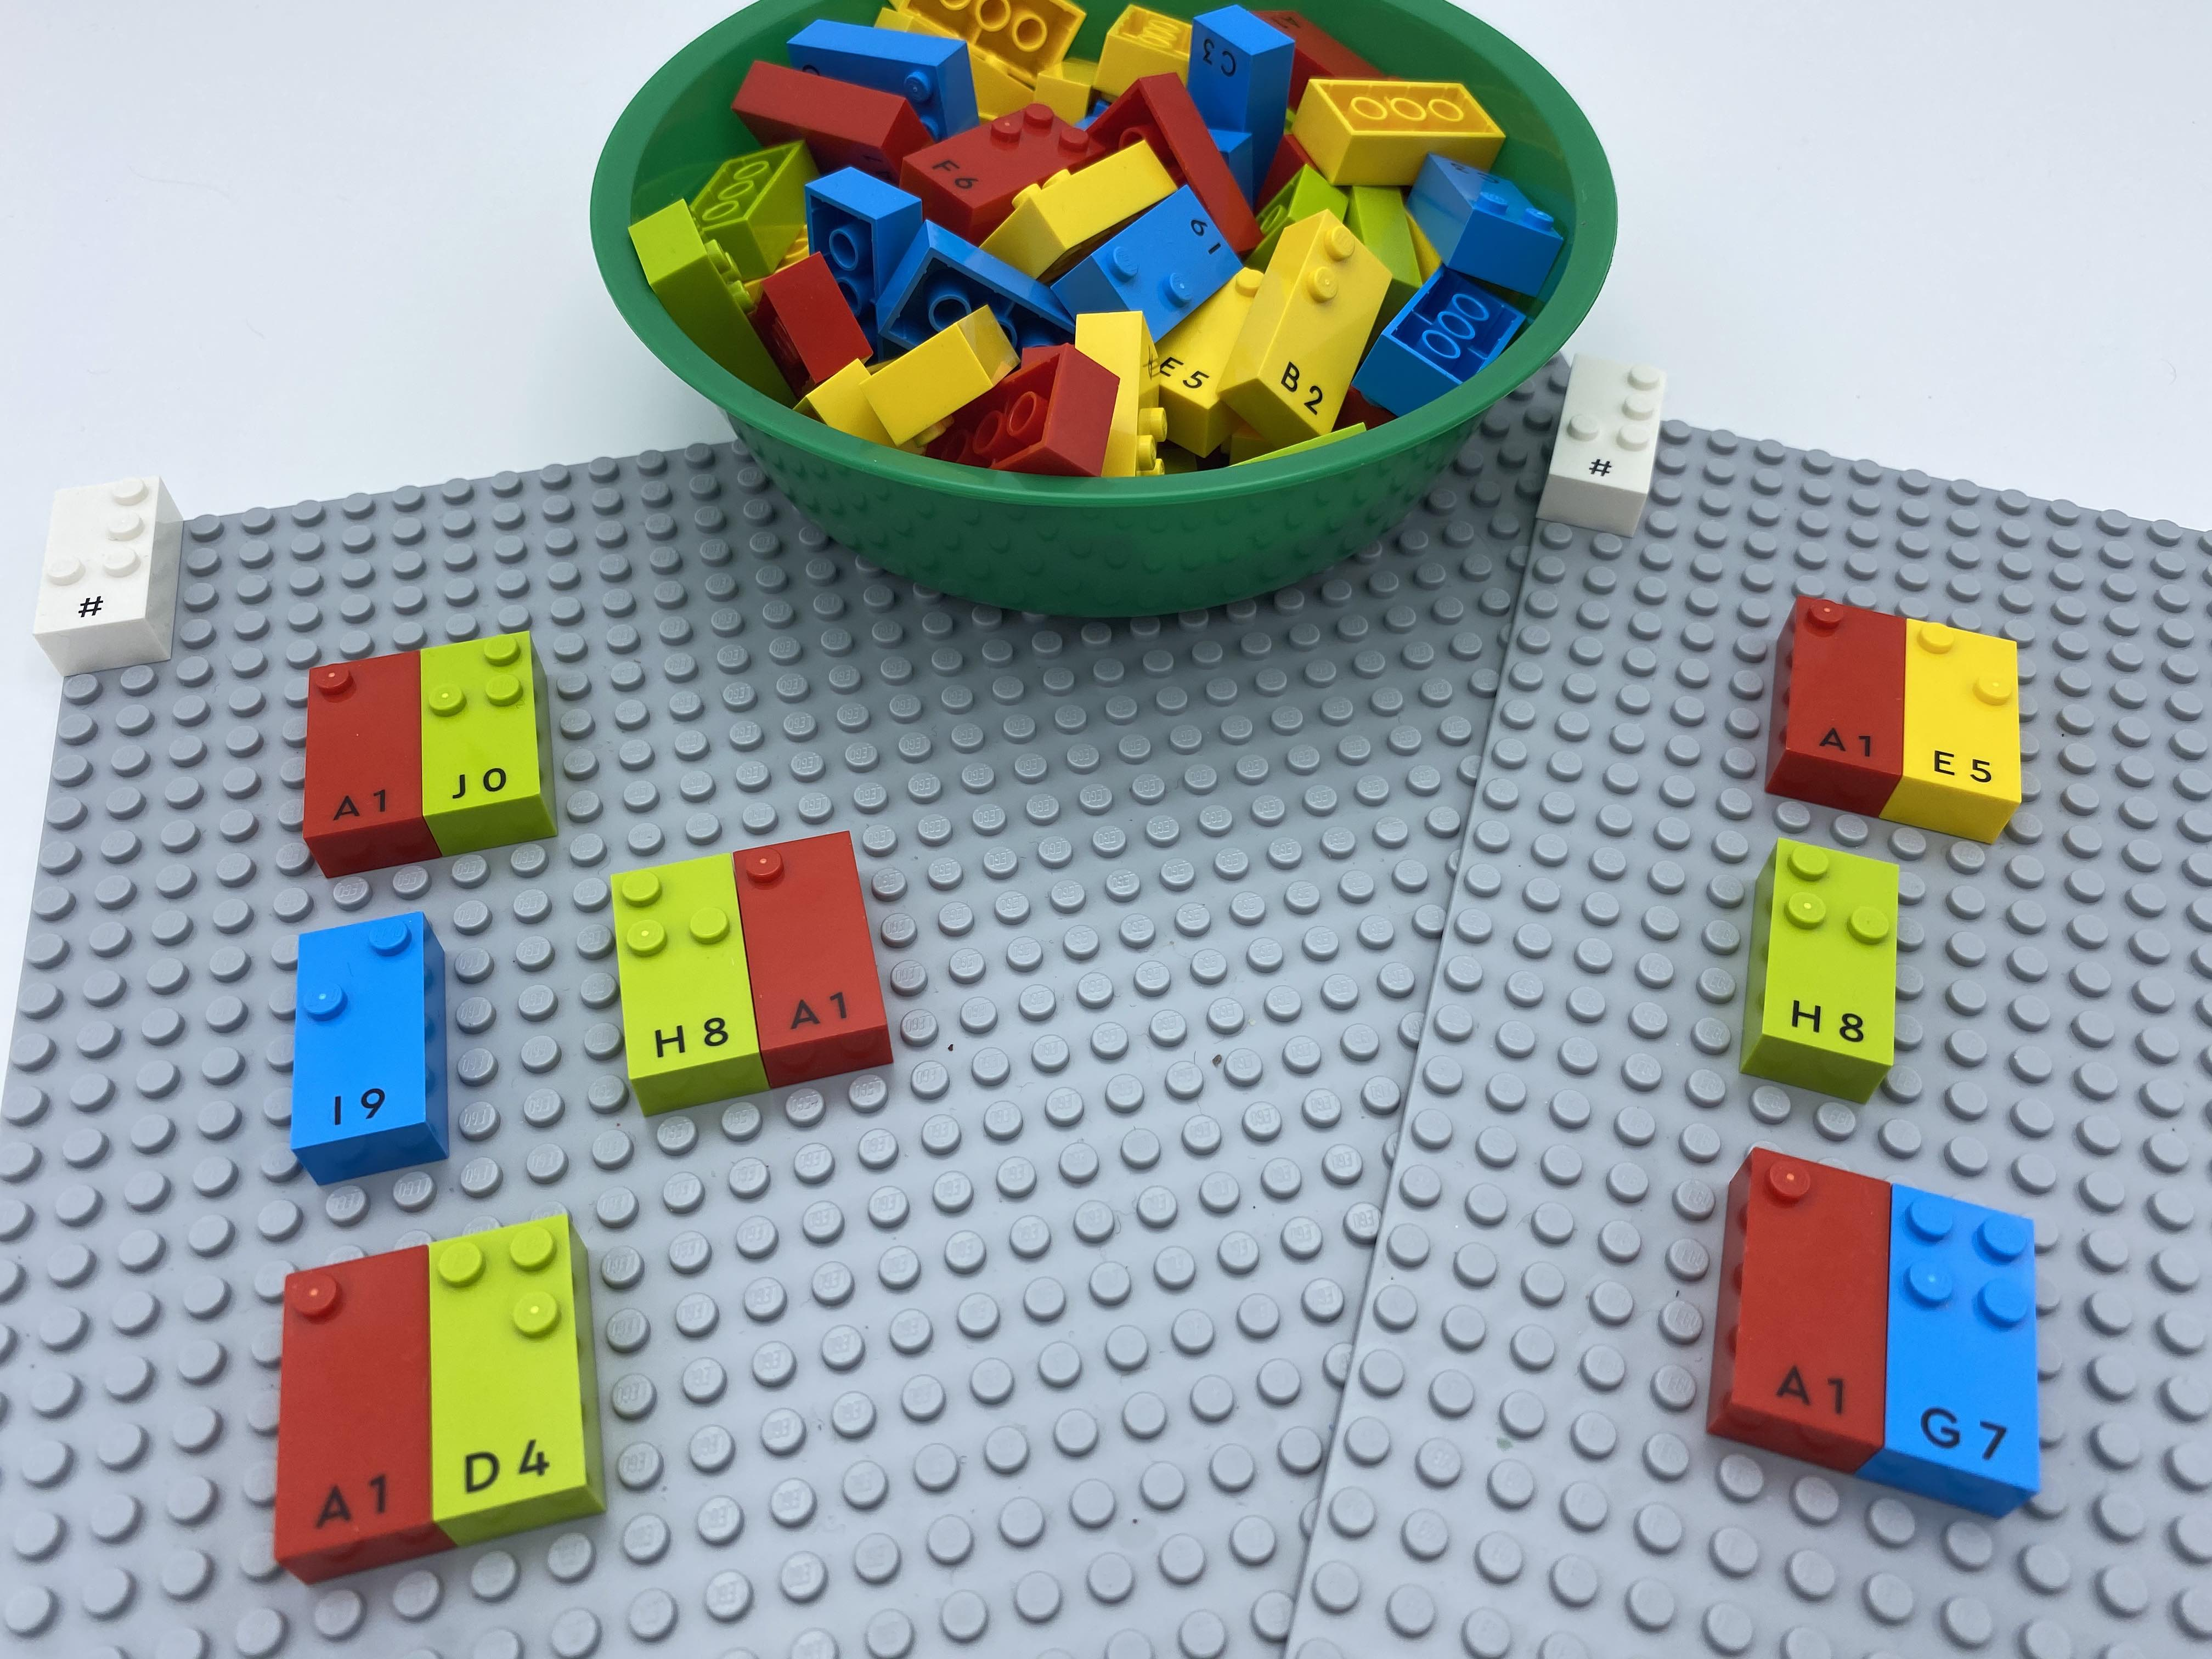 Numbers bricks 8 and 1 placed close to number 9 on Bingo card 1.